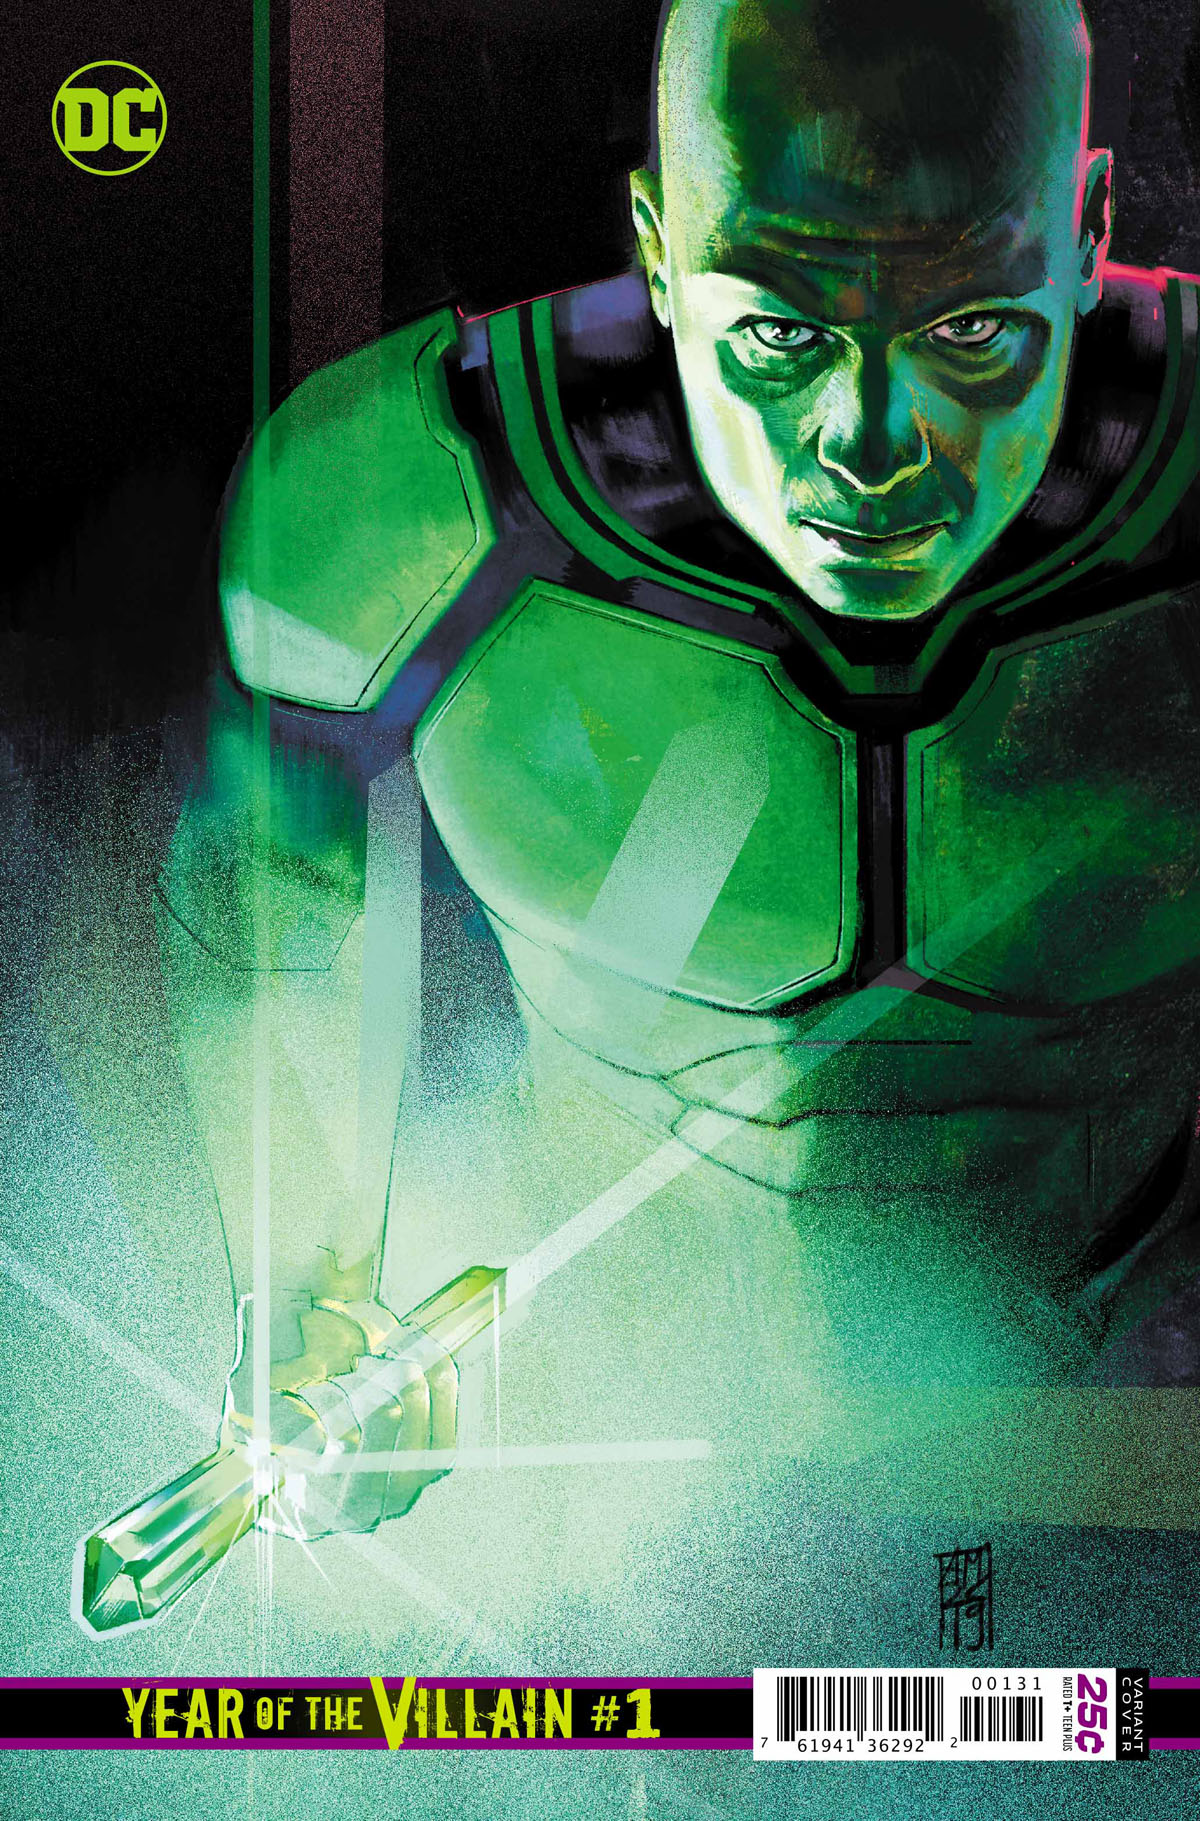 DC's Year of the Villain #1 Lex Luthor variant cover